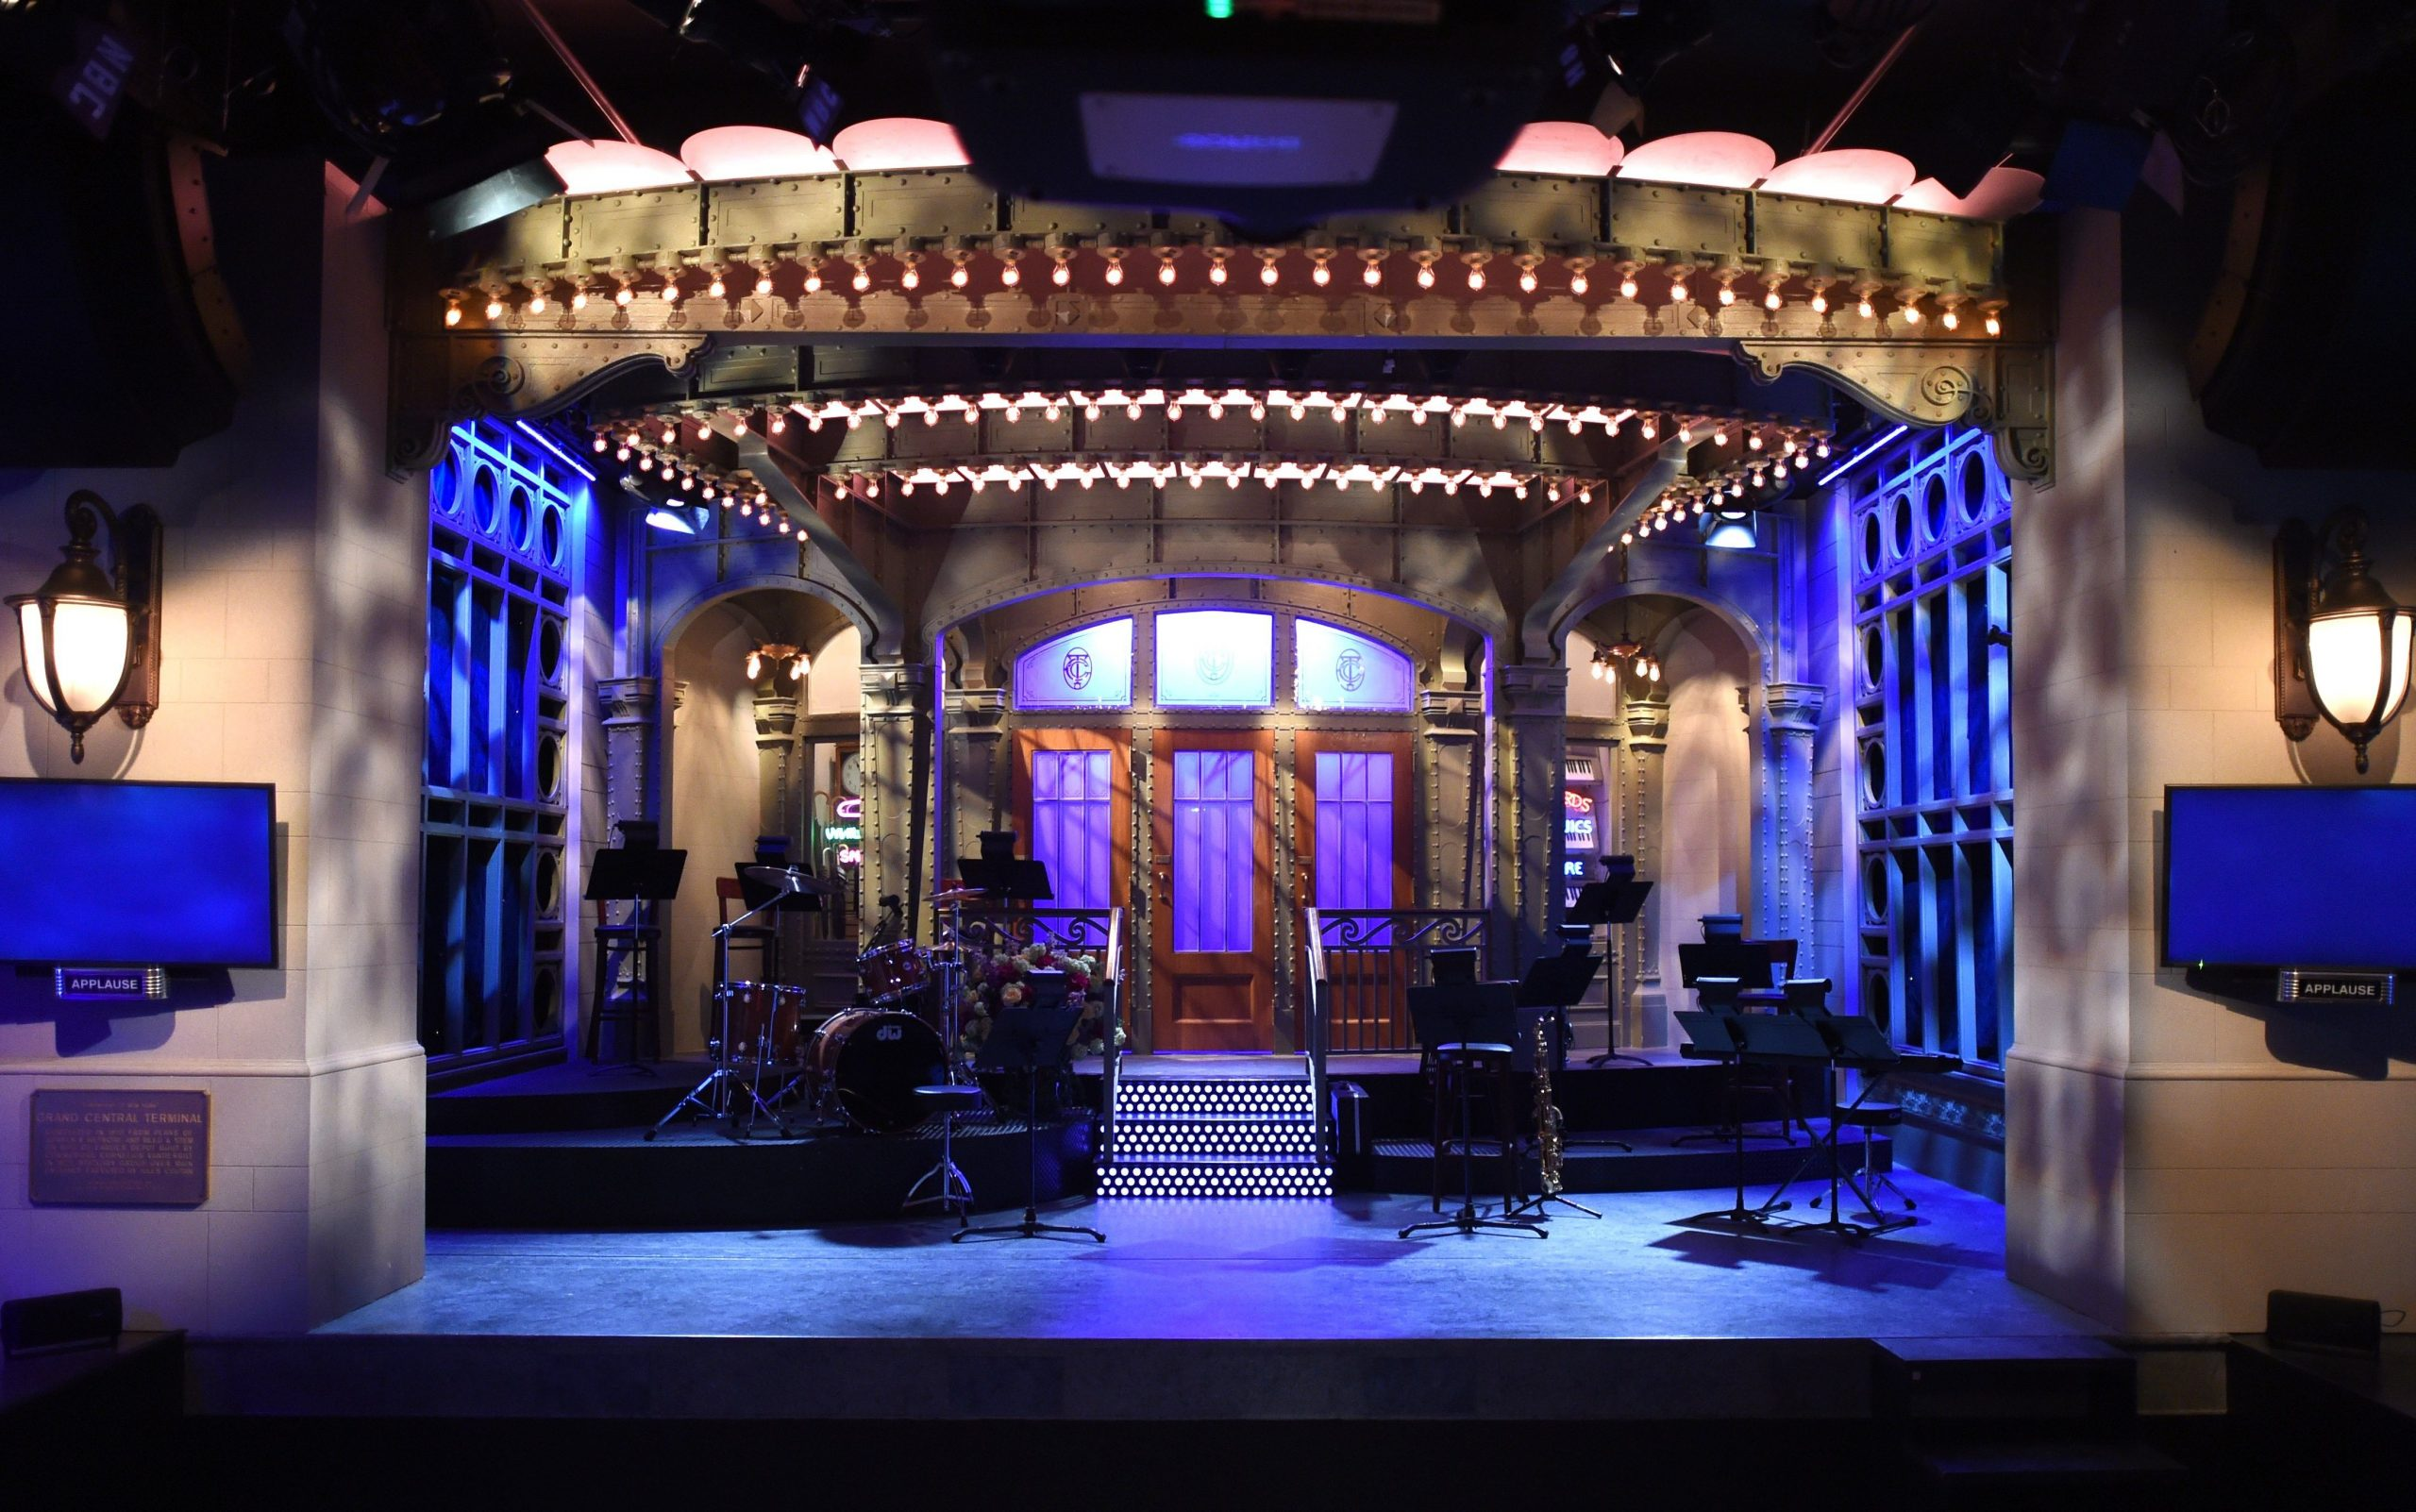 The Saturday Night Live stage